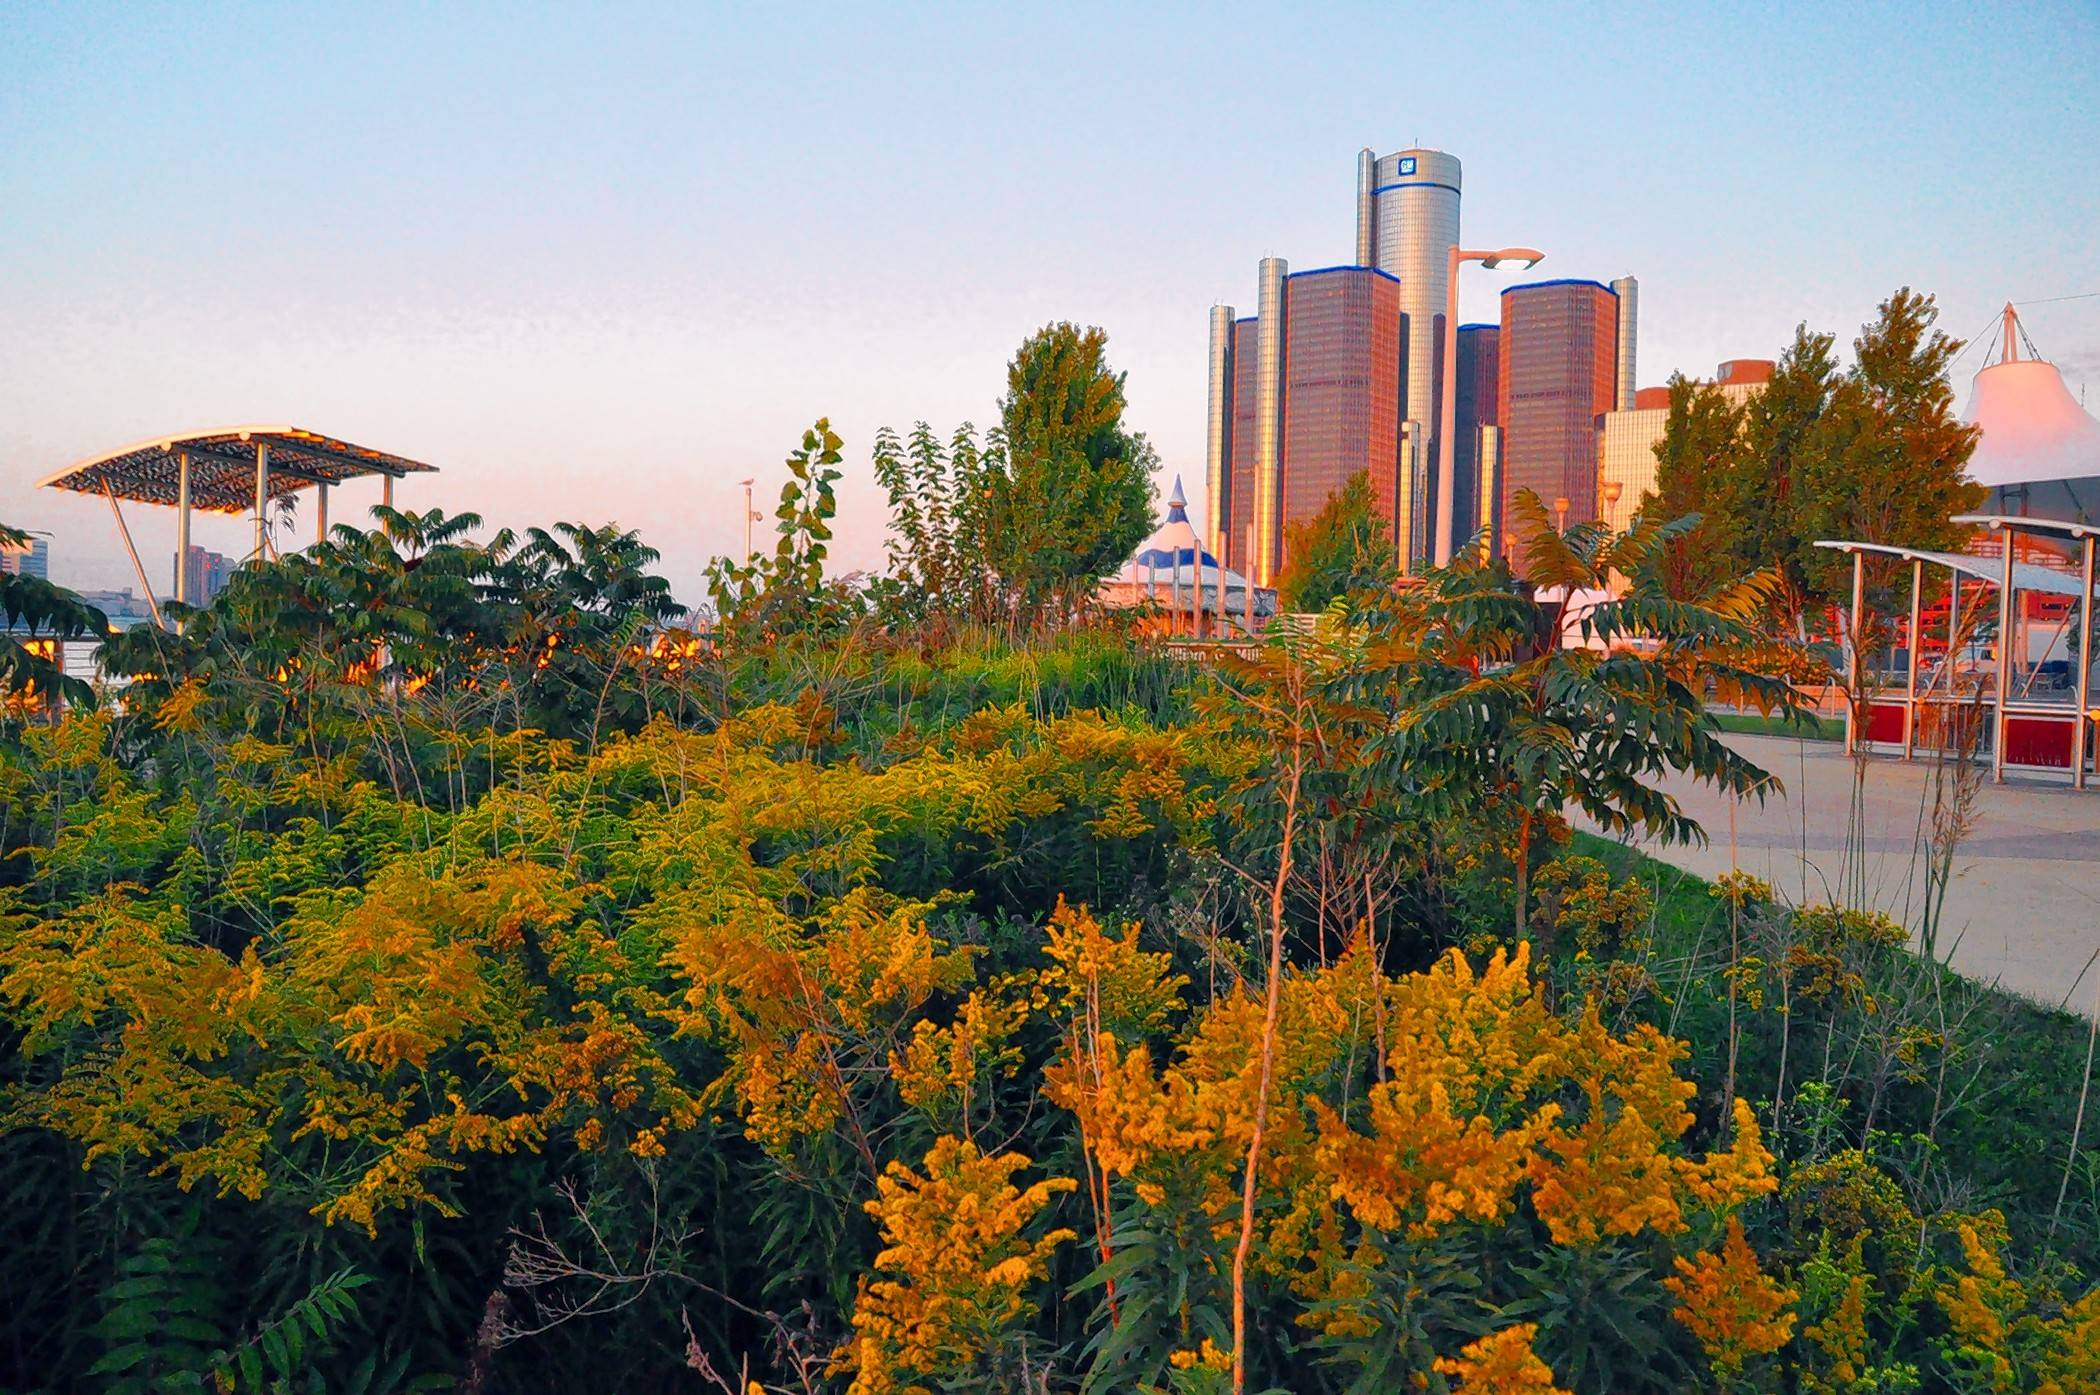 The new Riverwalk winds through Milliken State Park and Harbor, a 31-acre green oasis in downtown Detroit.